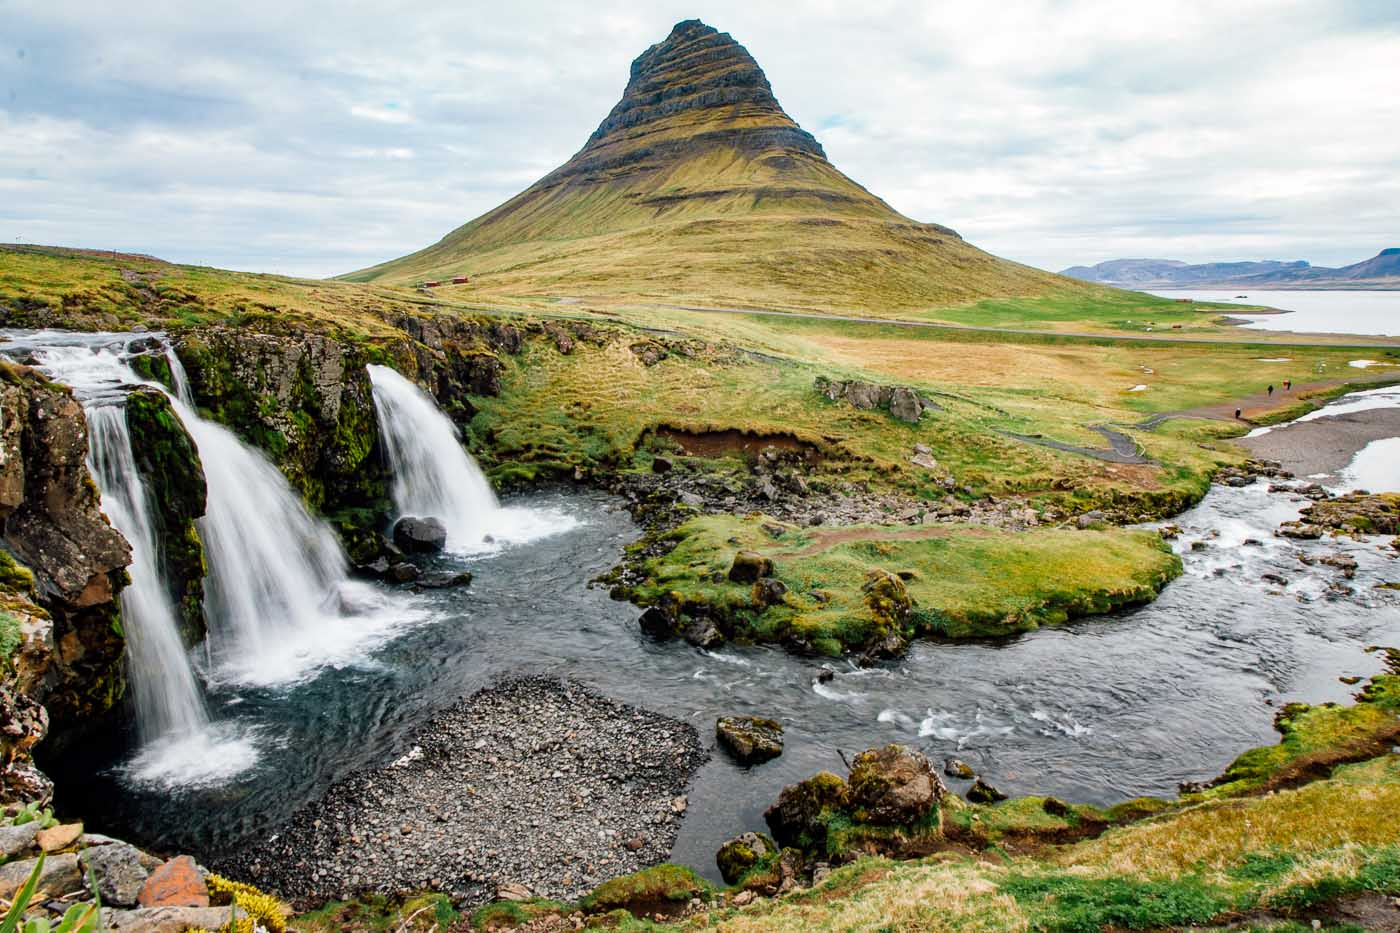 The Kirkjufellsfoss waterfall with the Kirkjufells mountain in the background on Iceland's Snaefellsnes Peninsula